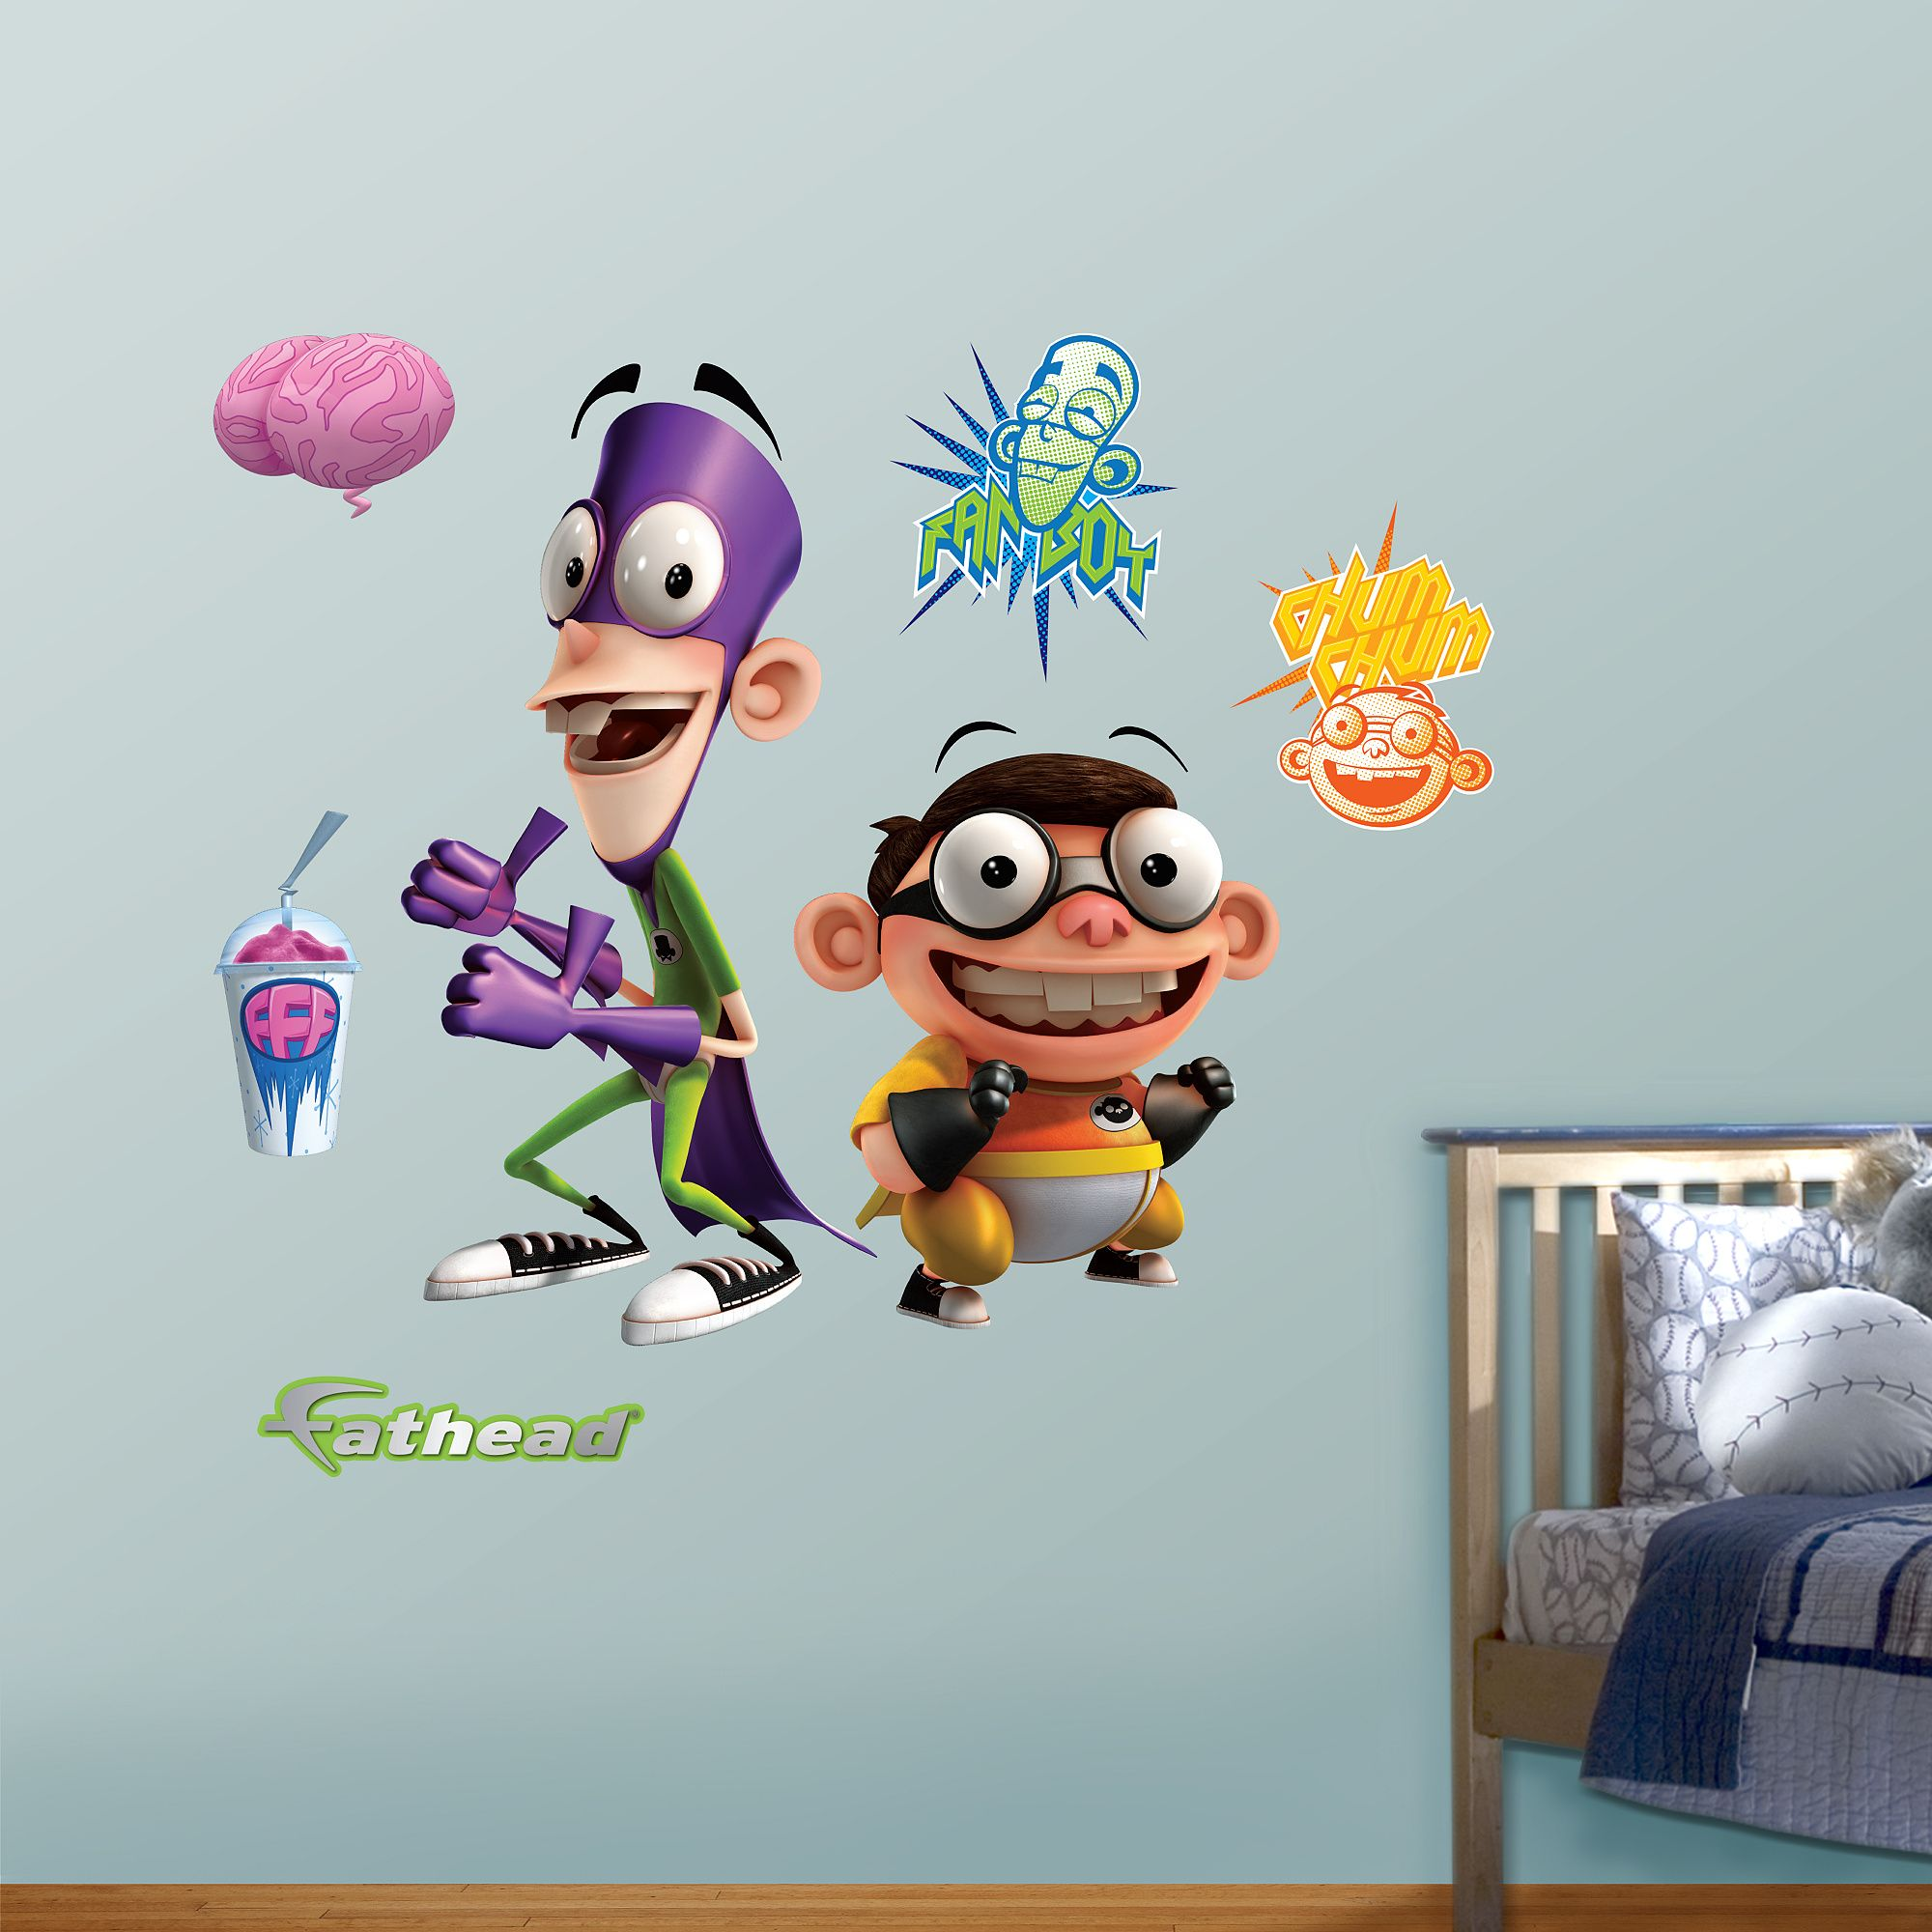 Fanboy And Chum Chum Wall Decals Peel Stick Vinyl Cool Things